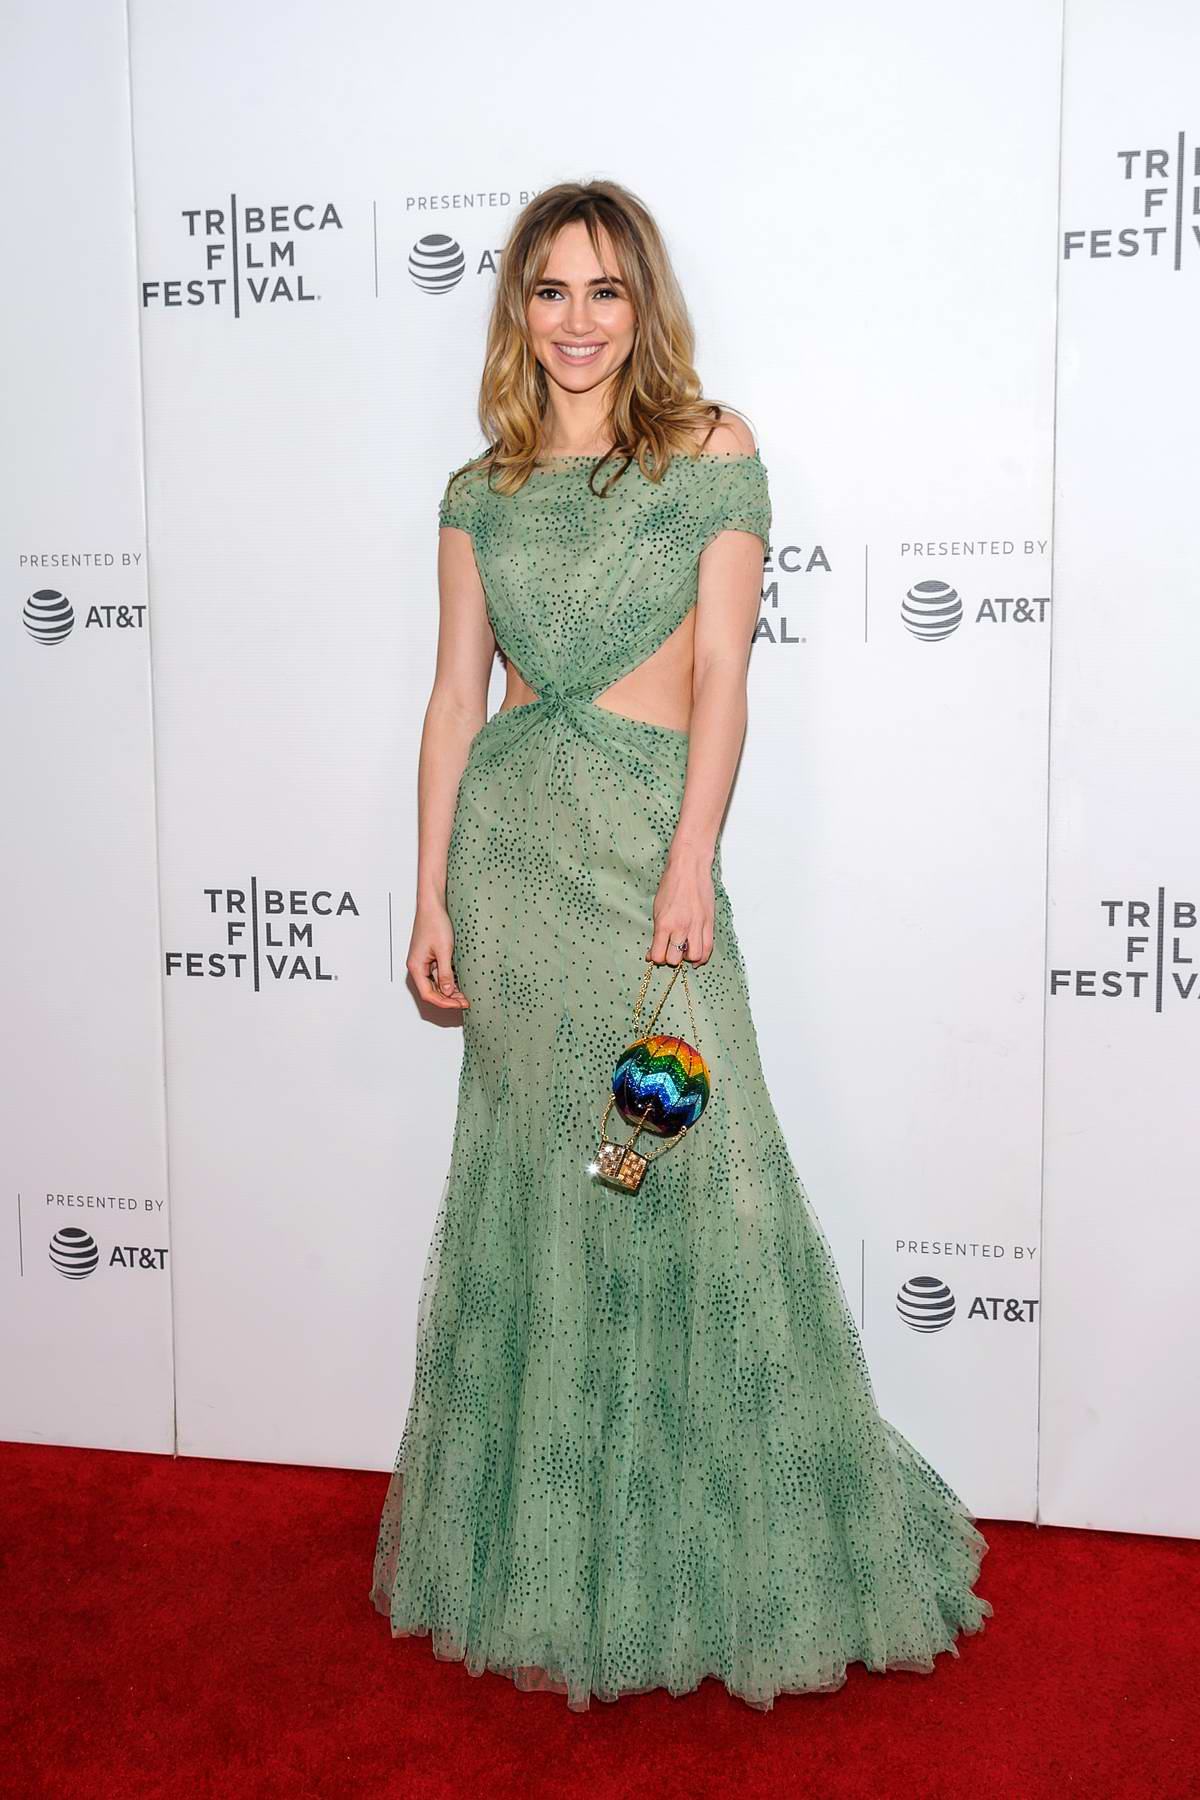 Suki Waterhouse attends 'Charlie Says' film premiere at Tribeca Film Festival in New York City